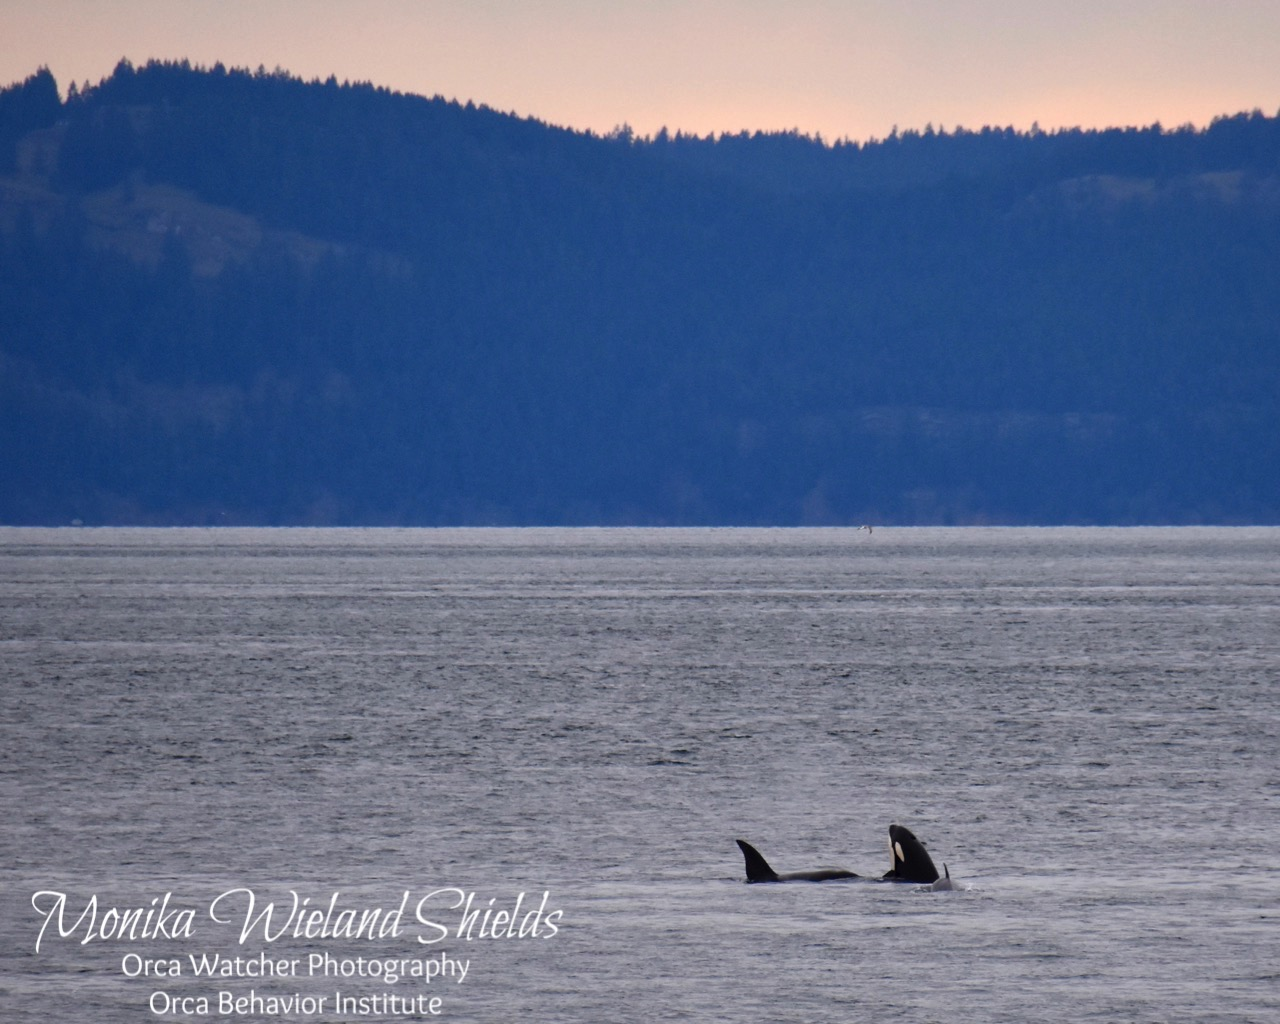 Orca watcher second on march 9th as they headed north past san juan county park altavistaventures Image collections